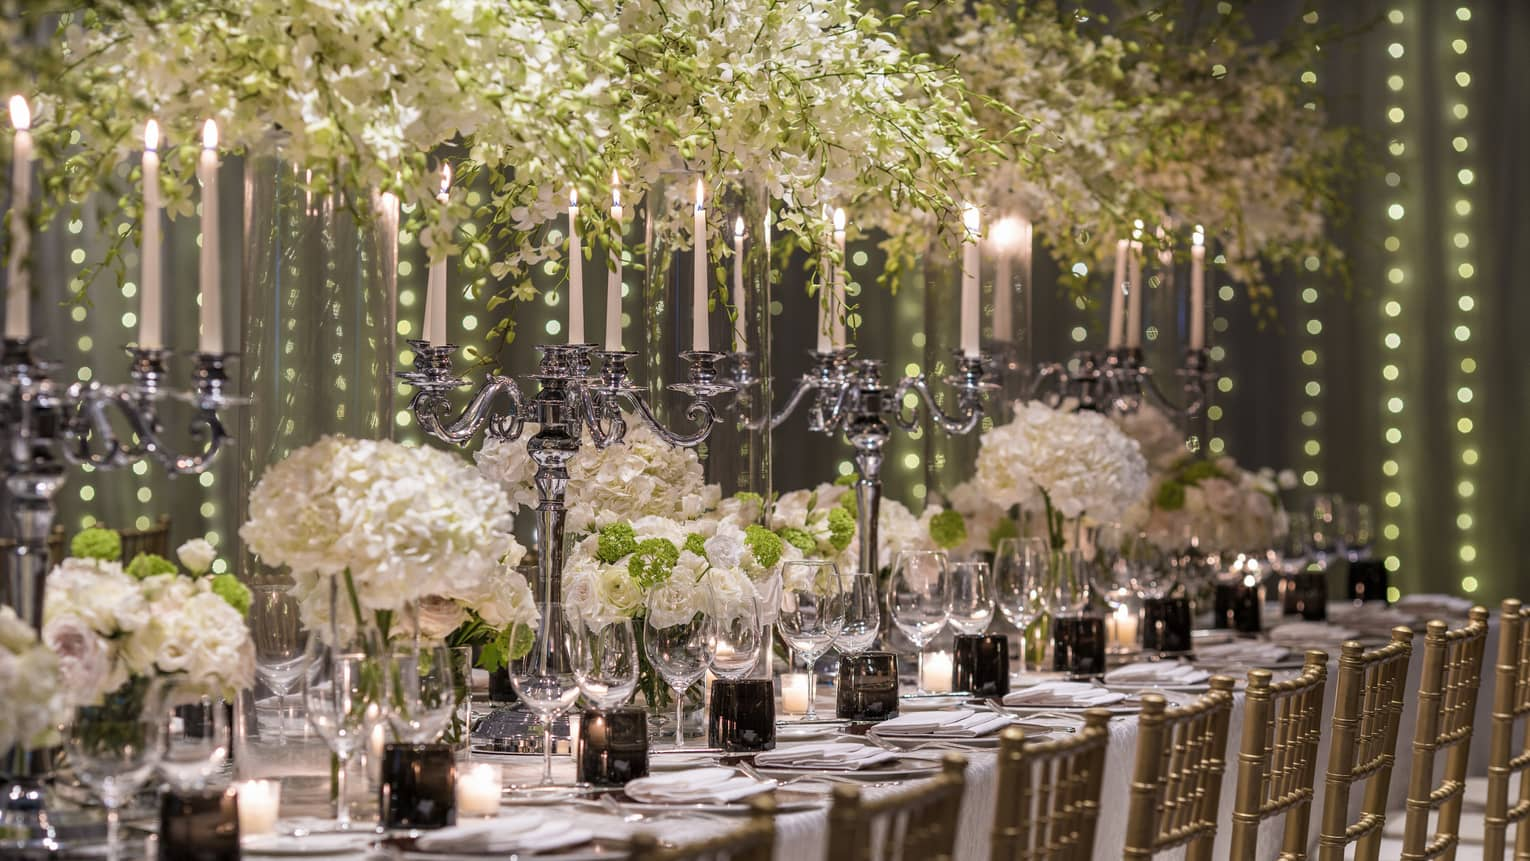 Elaborate white flowers and candelabras serve as the centerpiece of a dining arrangement